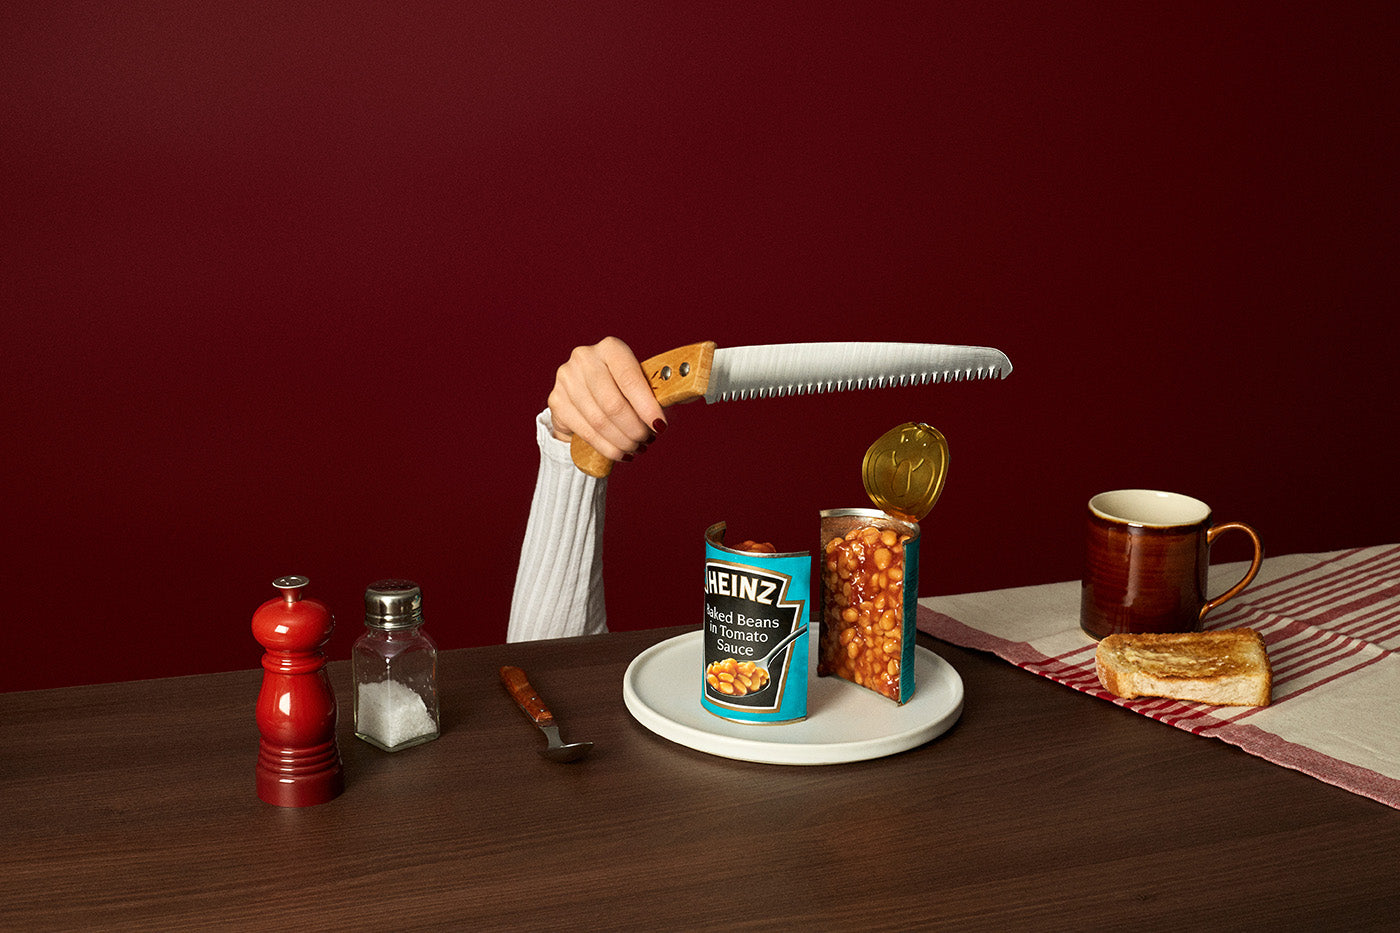 Sawing baked beans in half. Image by Fragmento Universo